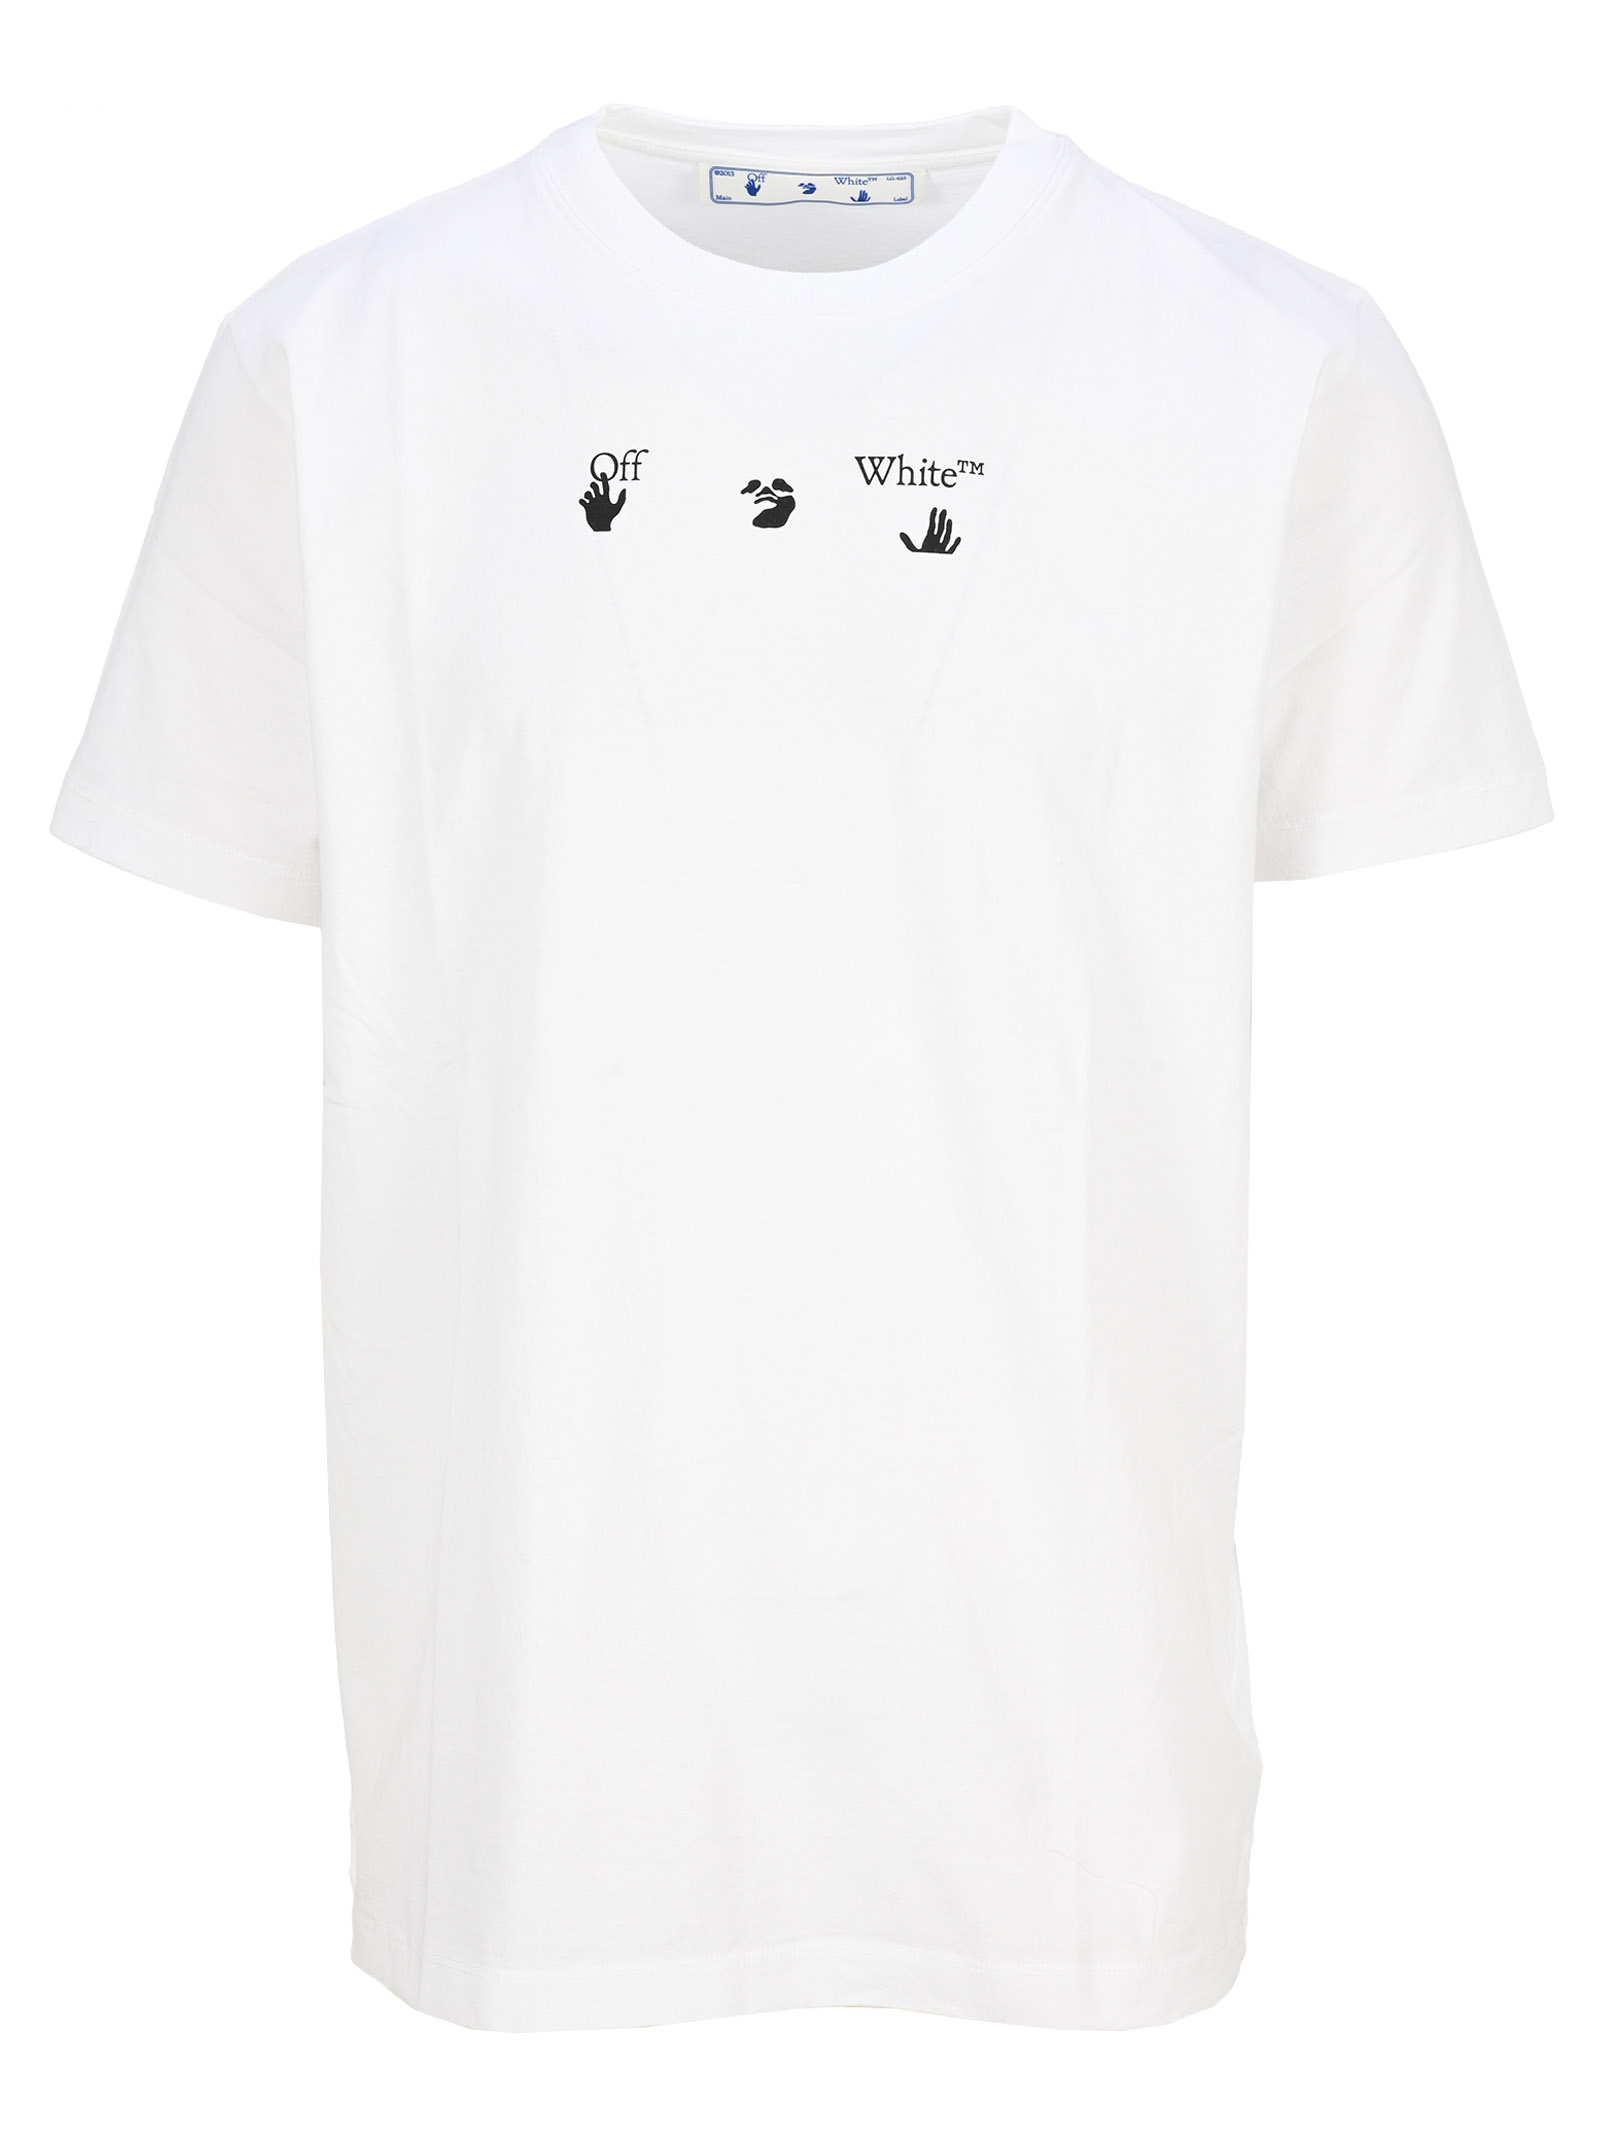 Off-White Cottons BOLT ARROWS SHORT SLEEVES T-SHIRT